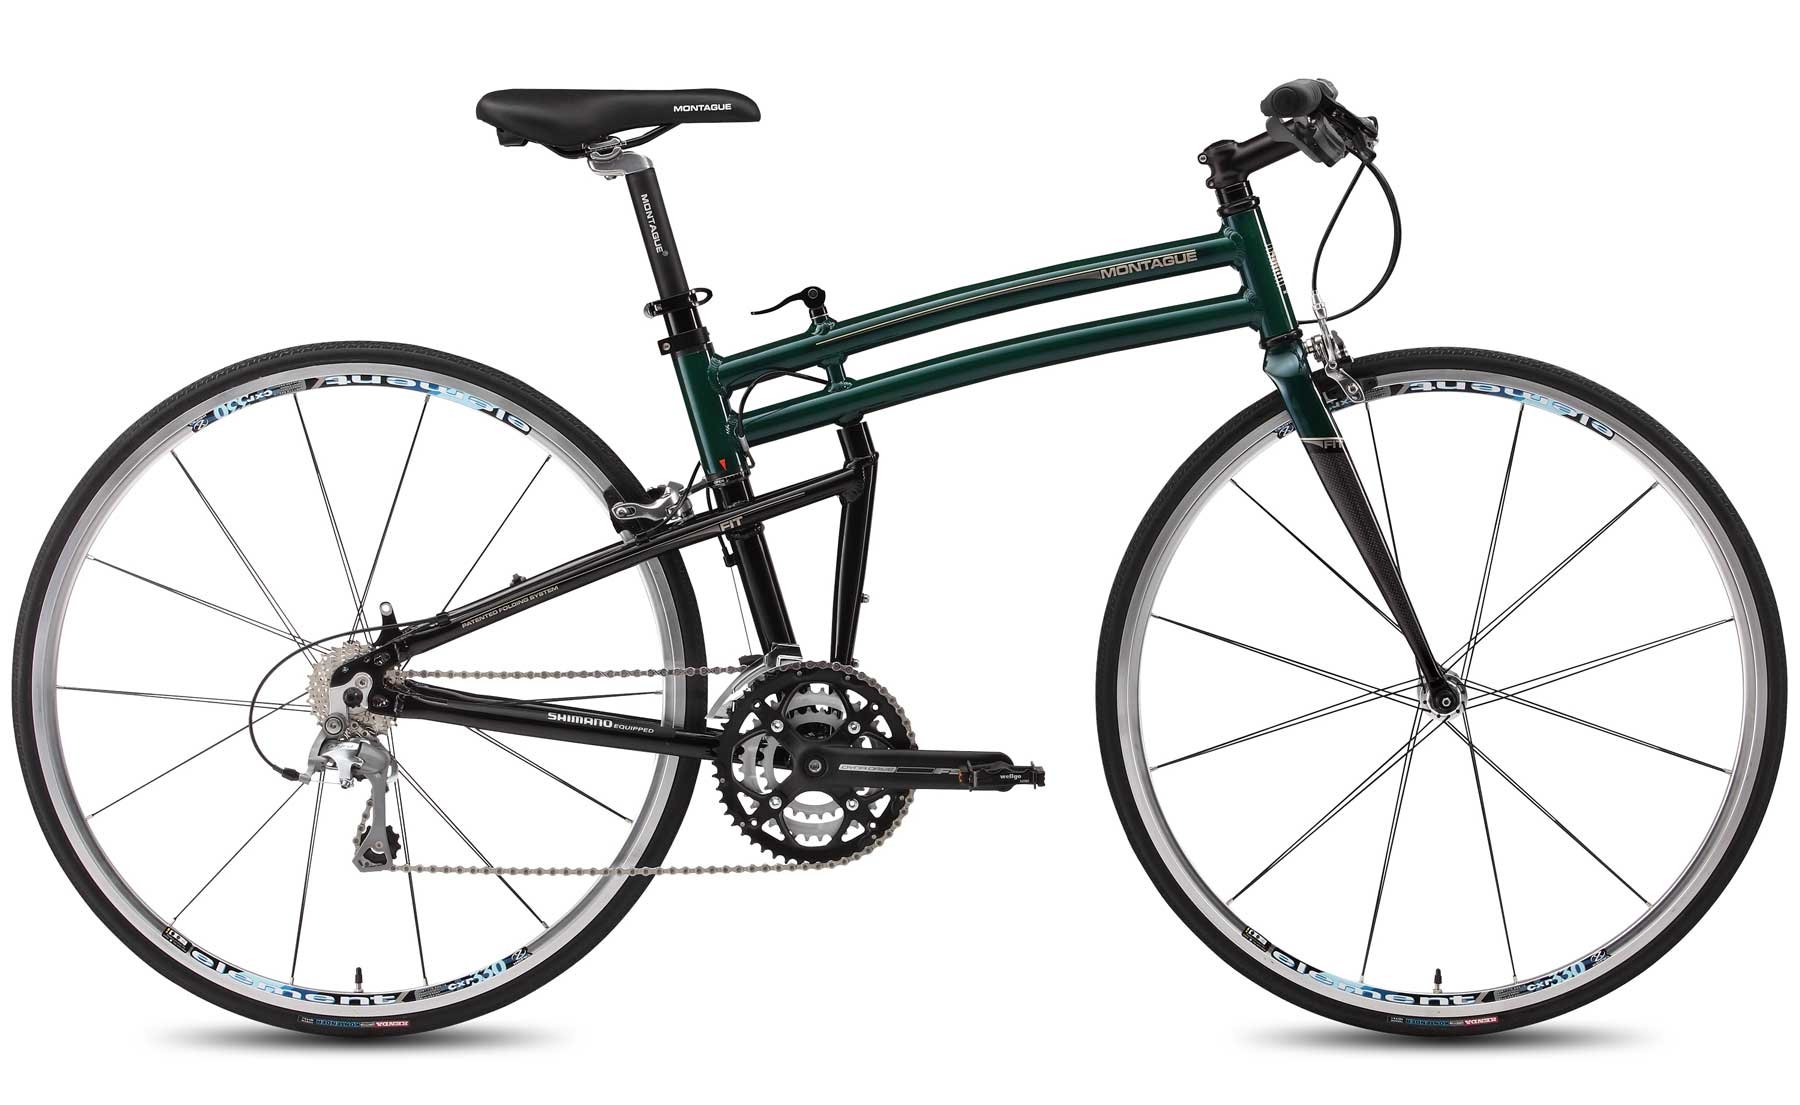 Montague Fit Full Size Folding Bike Review